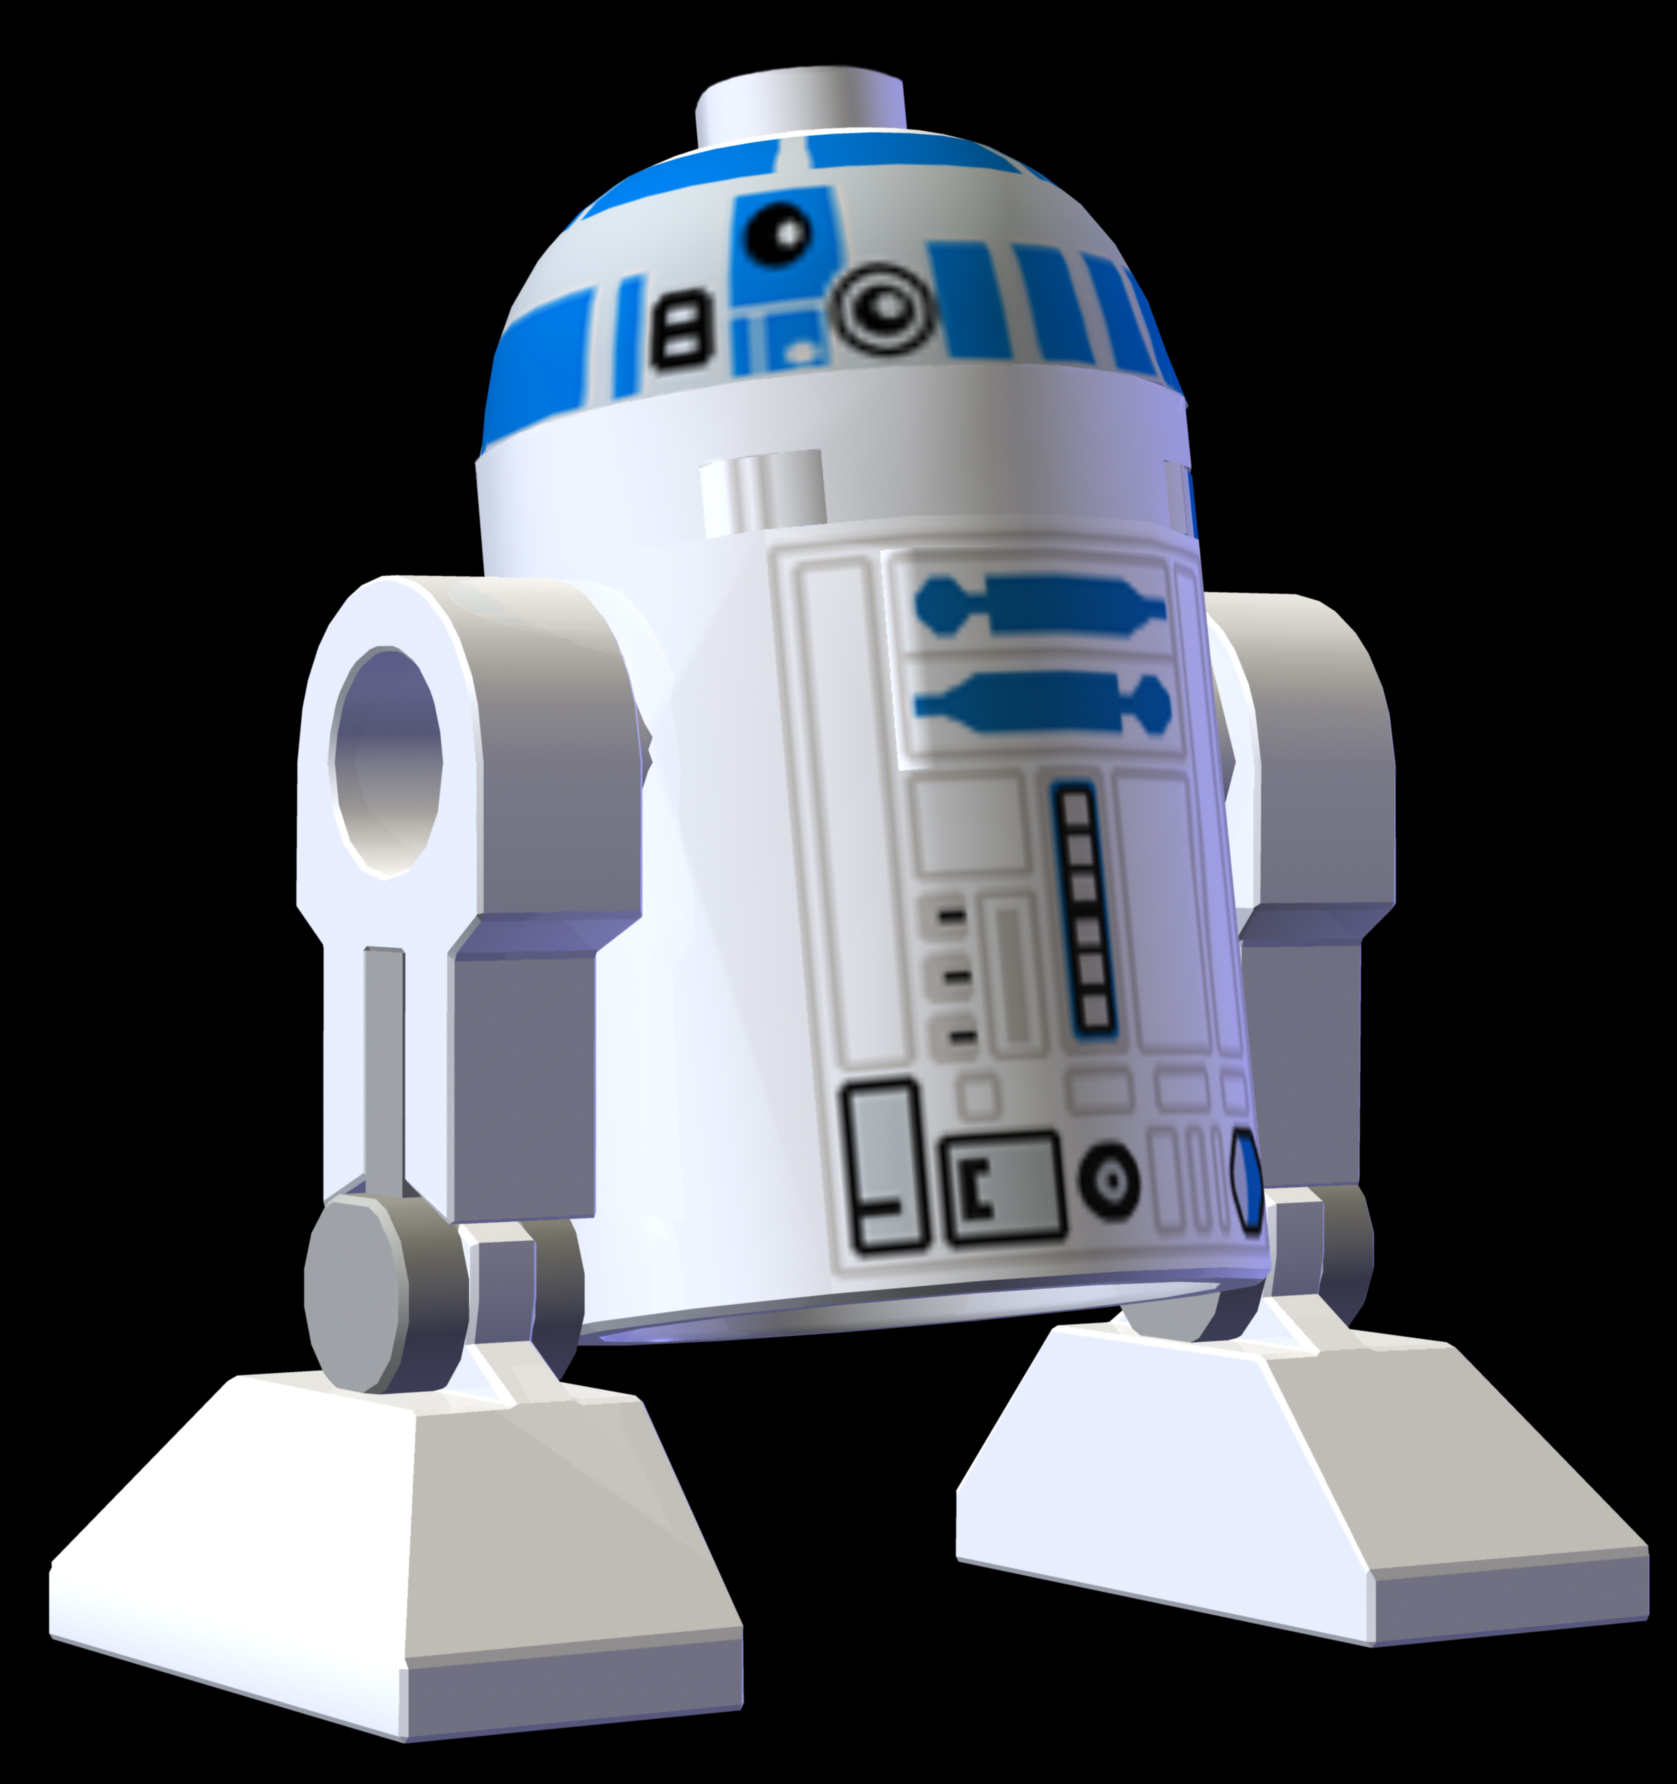 Lego Star Wars Coloring Page R2d2 Lego r2d2 coloring pages lego Lego Star Wars R2d2 Coloring Pages